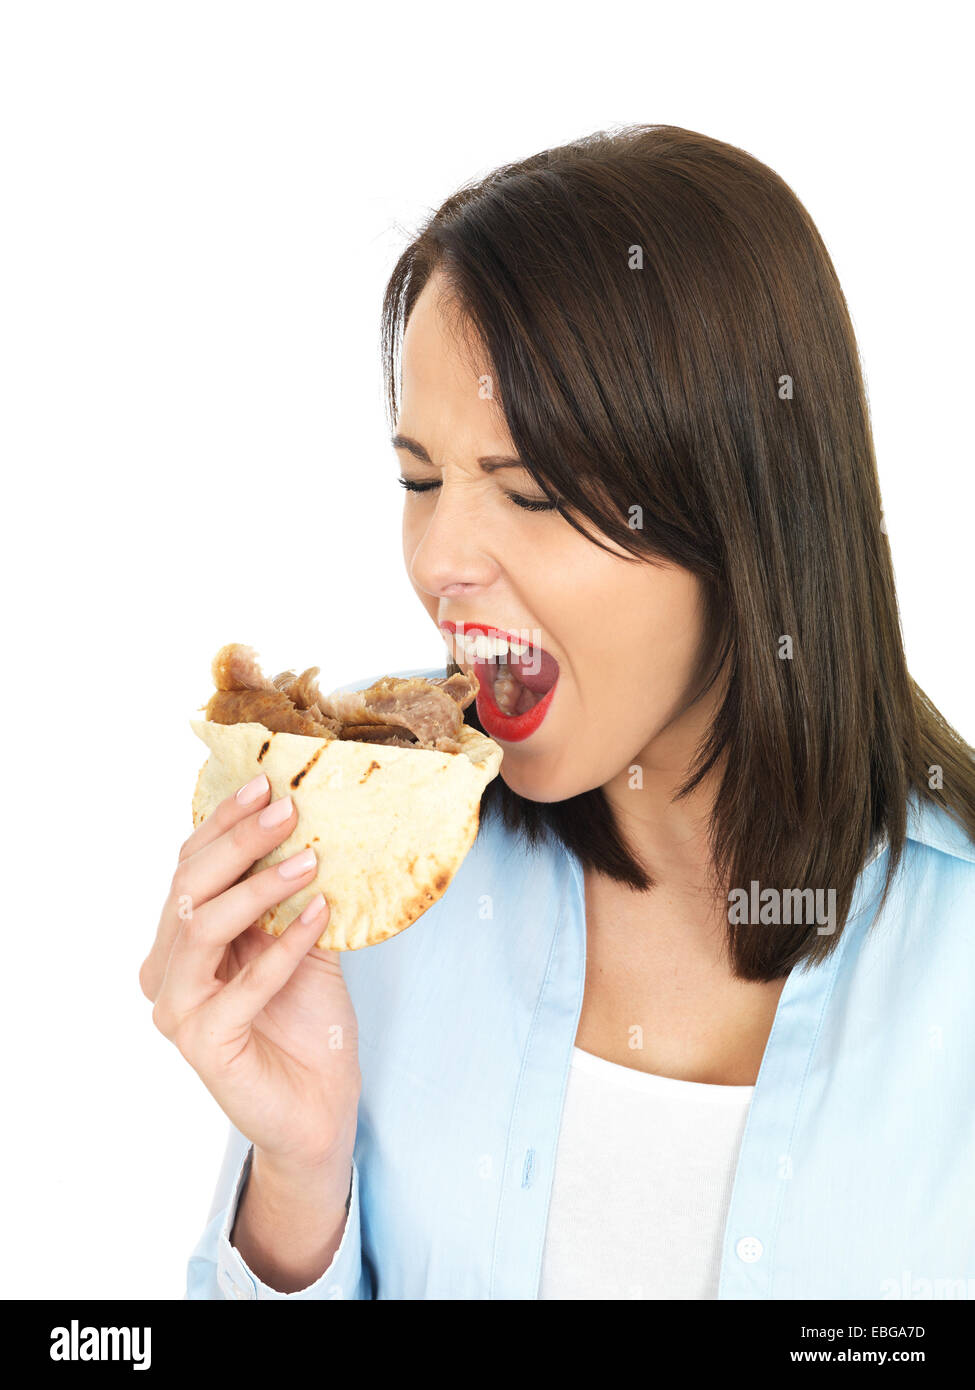 Attractive Young Twenty Something Woman Eating Donner Kebab - Stock Image